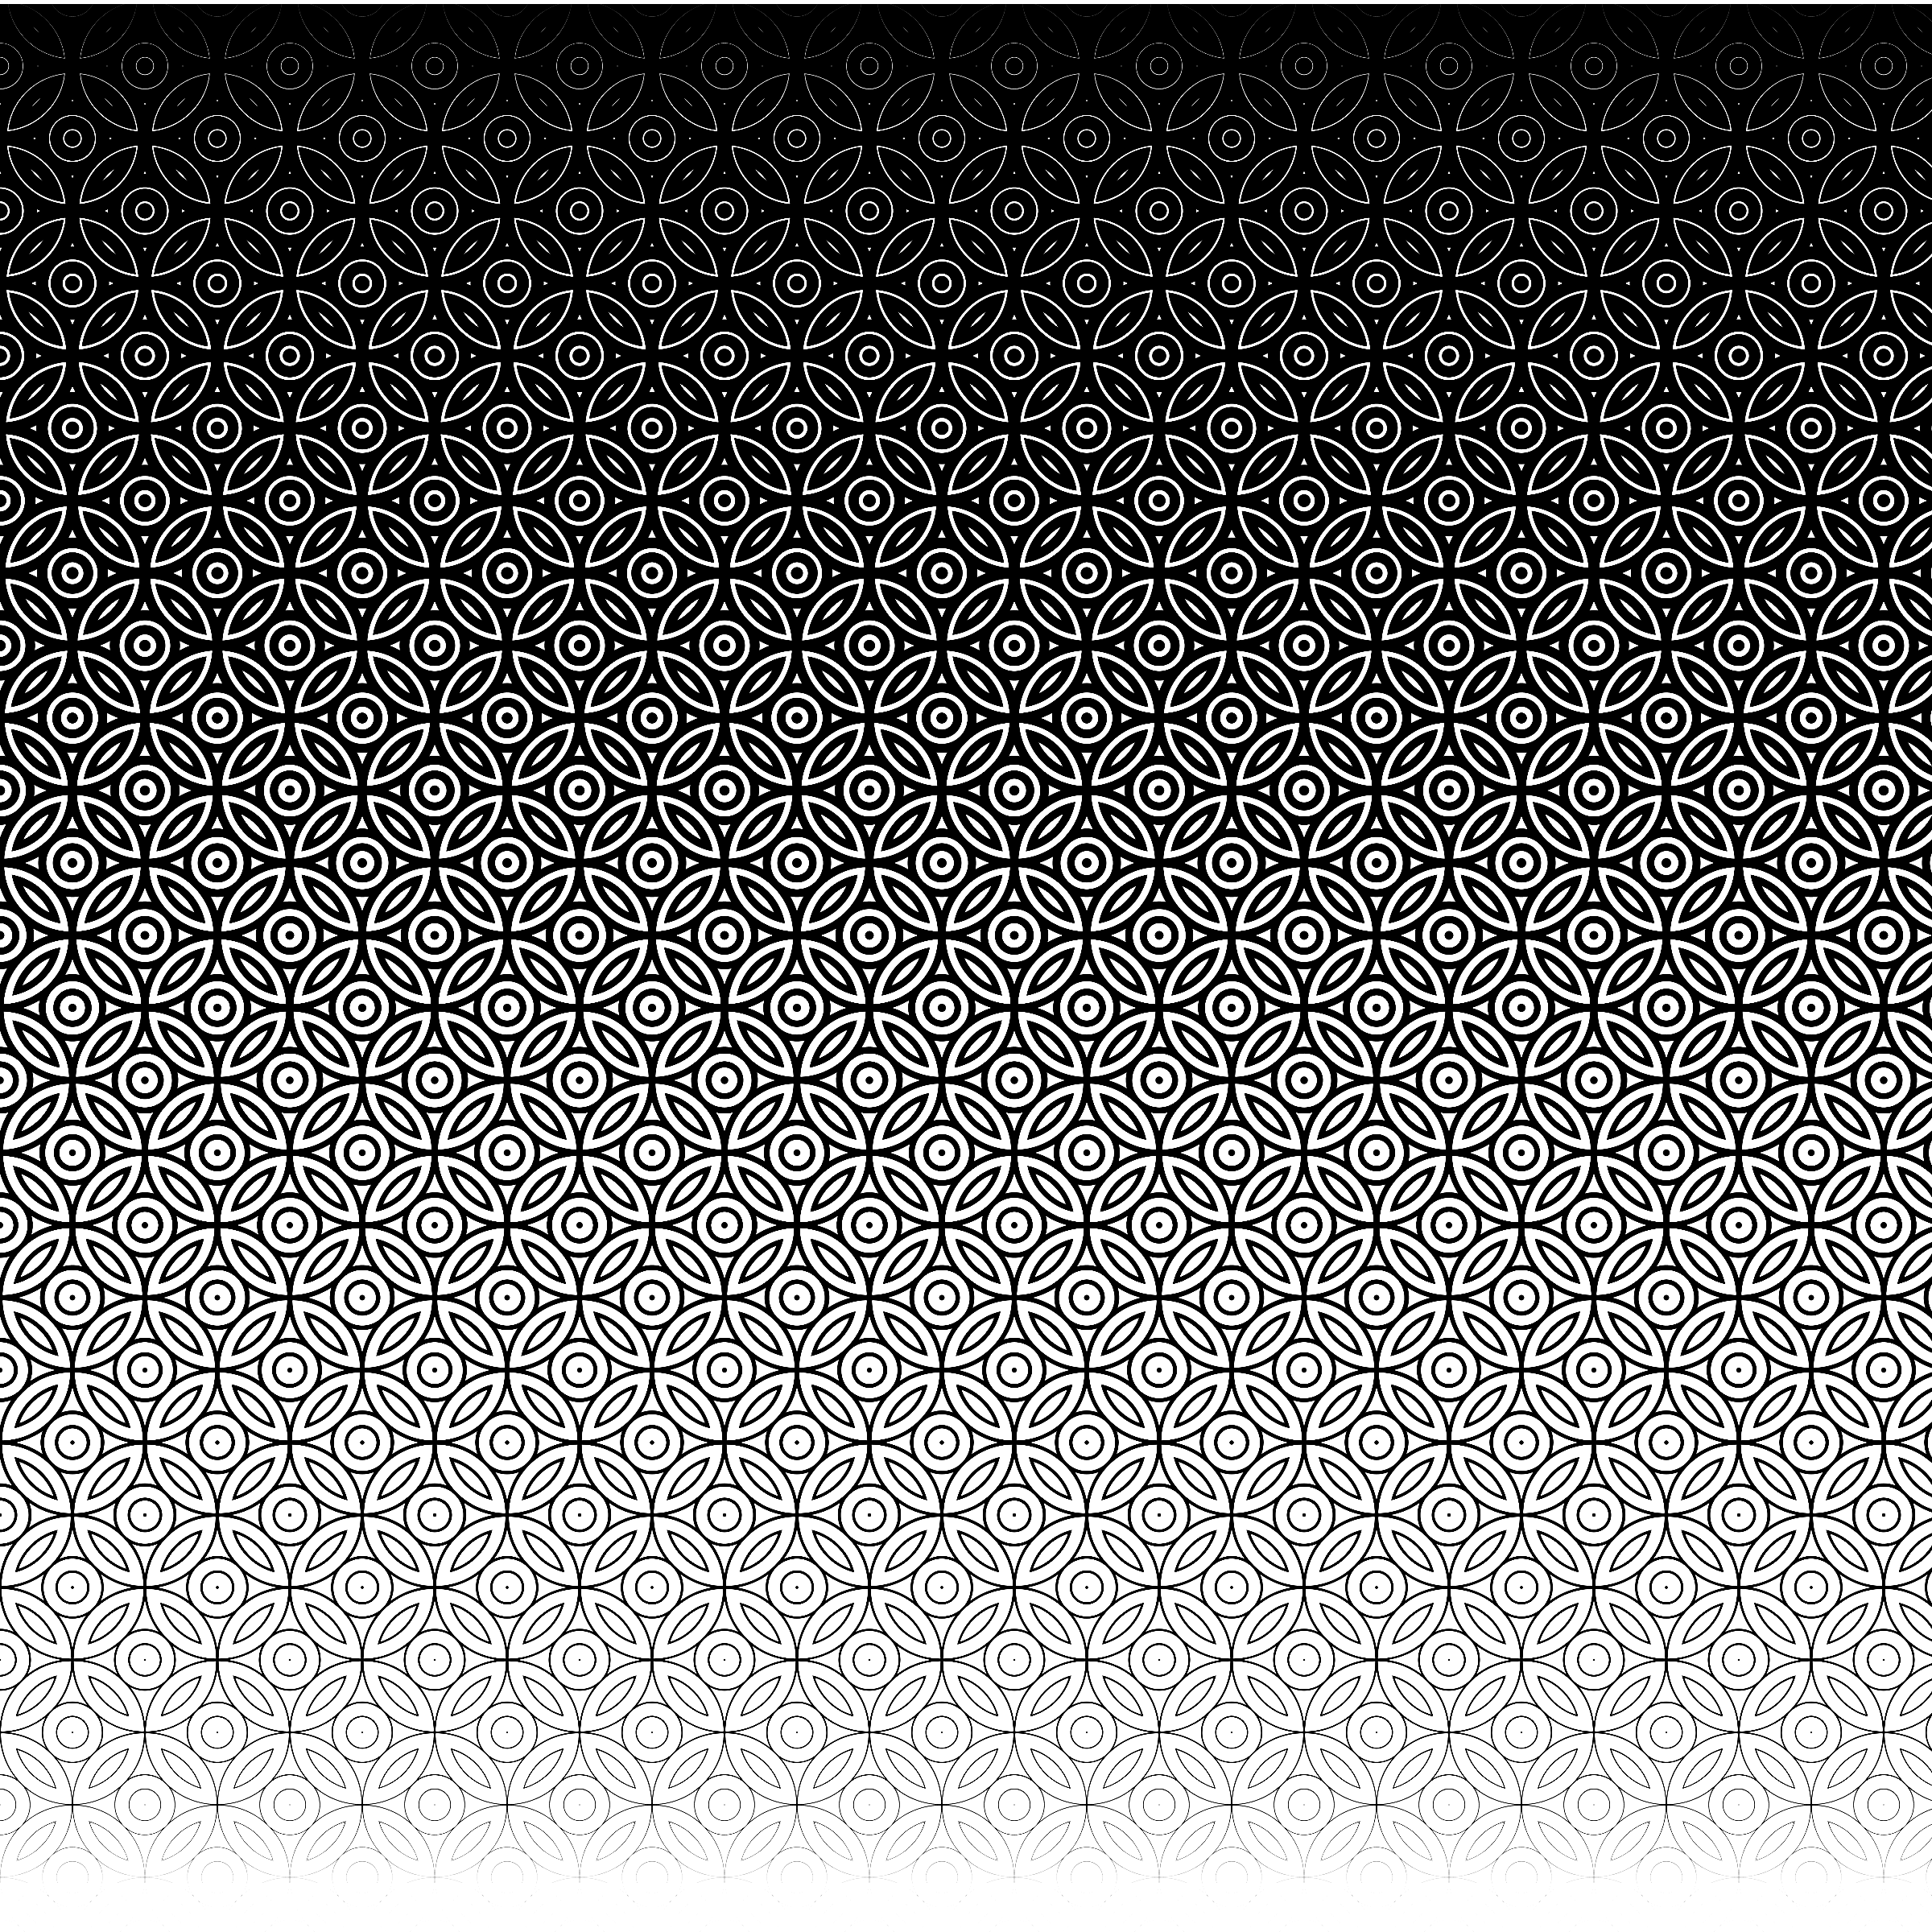 circle halftone template by Lazur URH